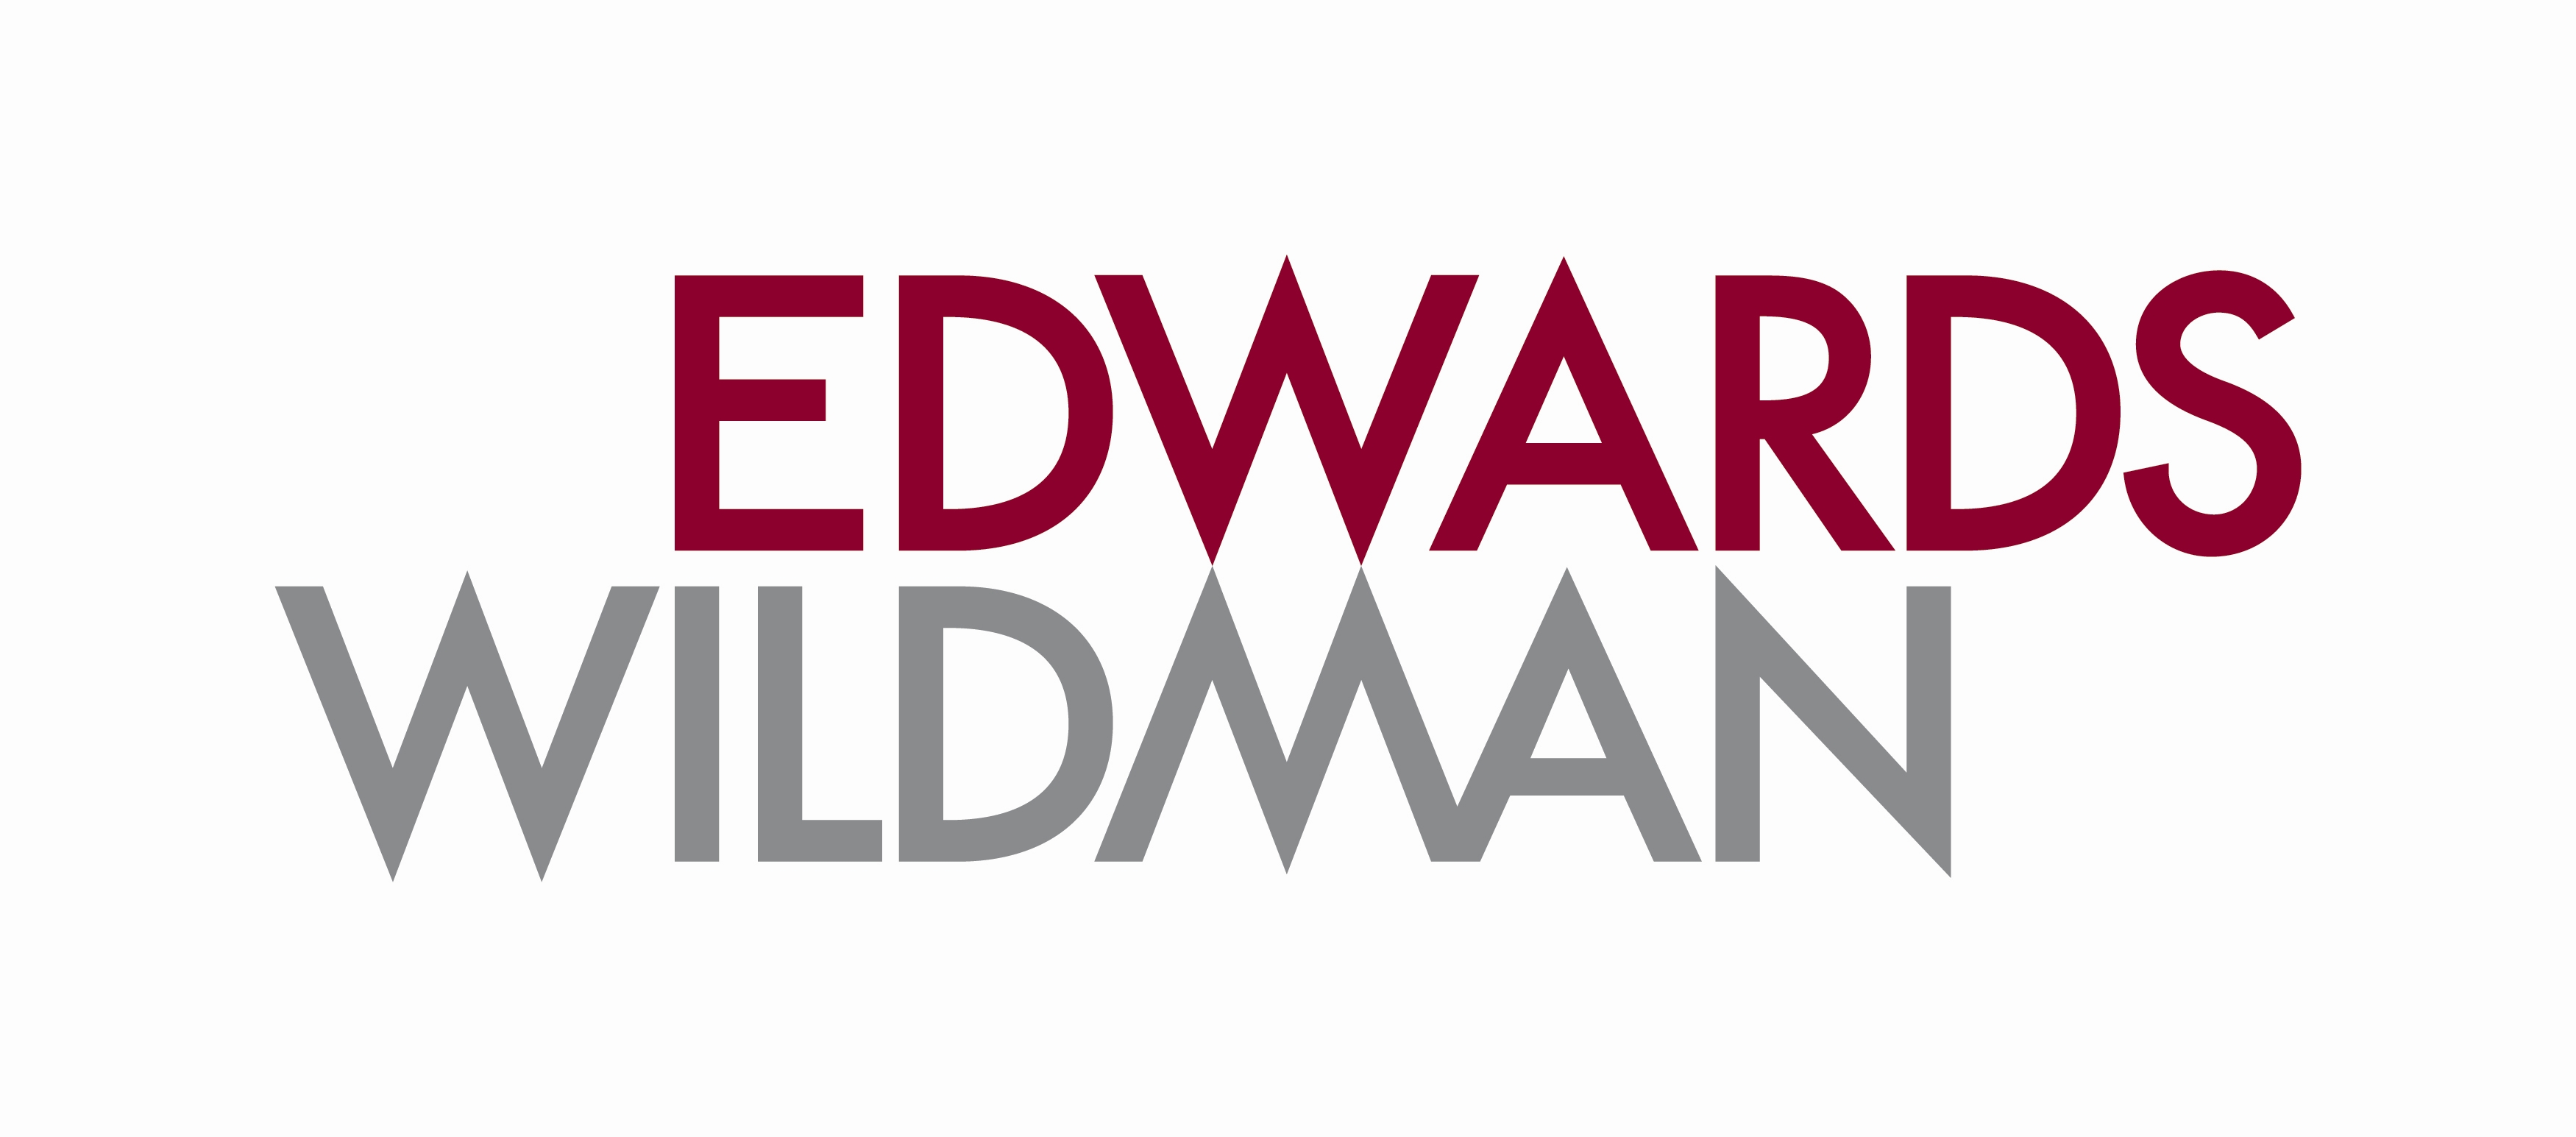 Edwards Wildman will supply legal services to the London Lions Basketball Club and Sports Foundation